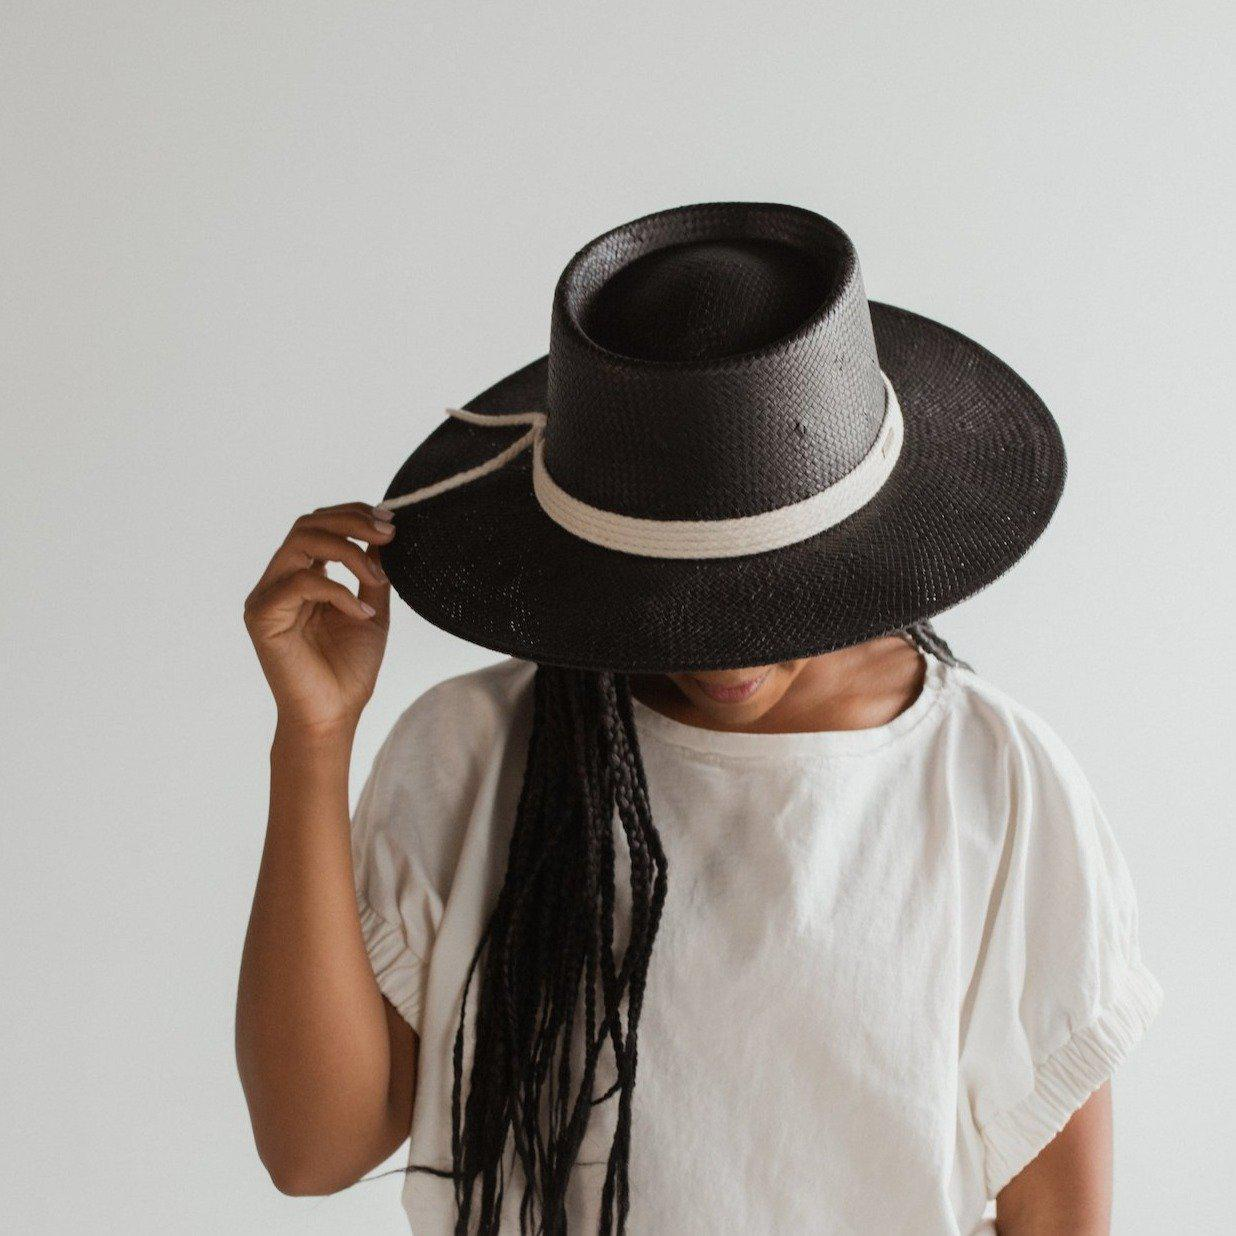 GIGI PIP Hats for Women- Bre Straw Pork Pie - Black-Straw Hats